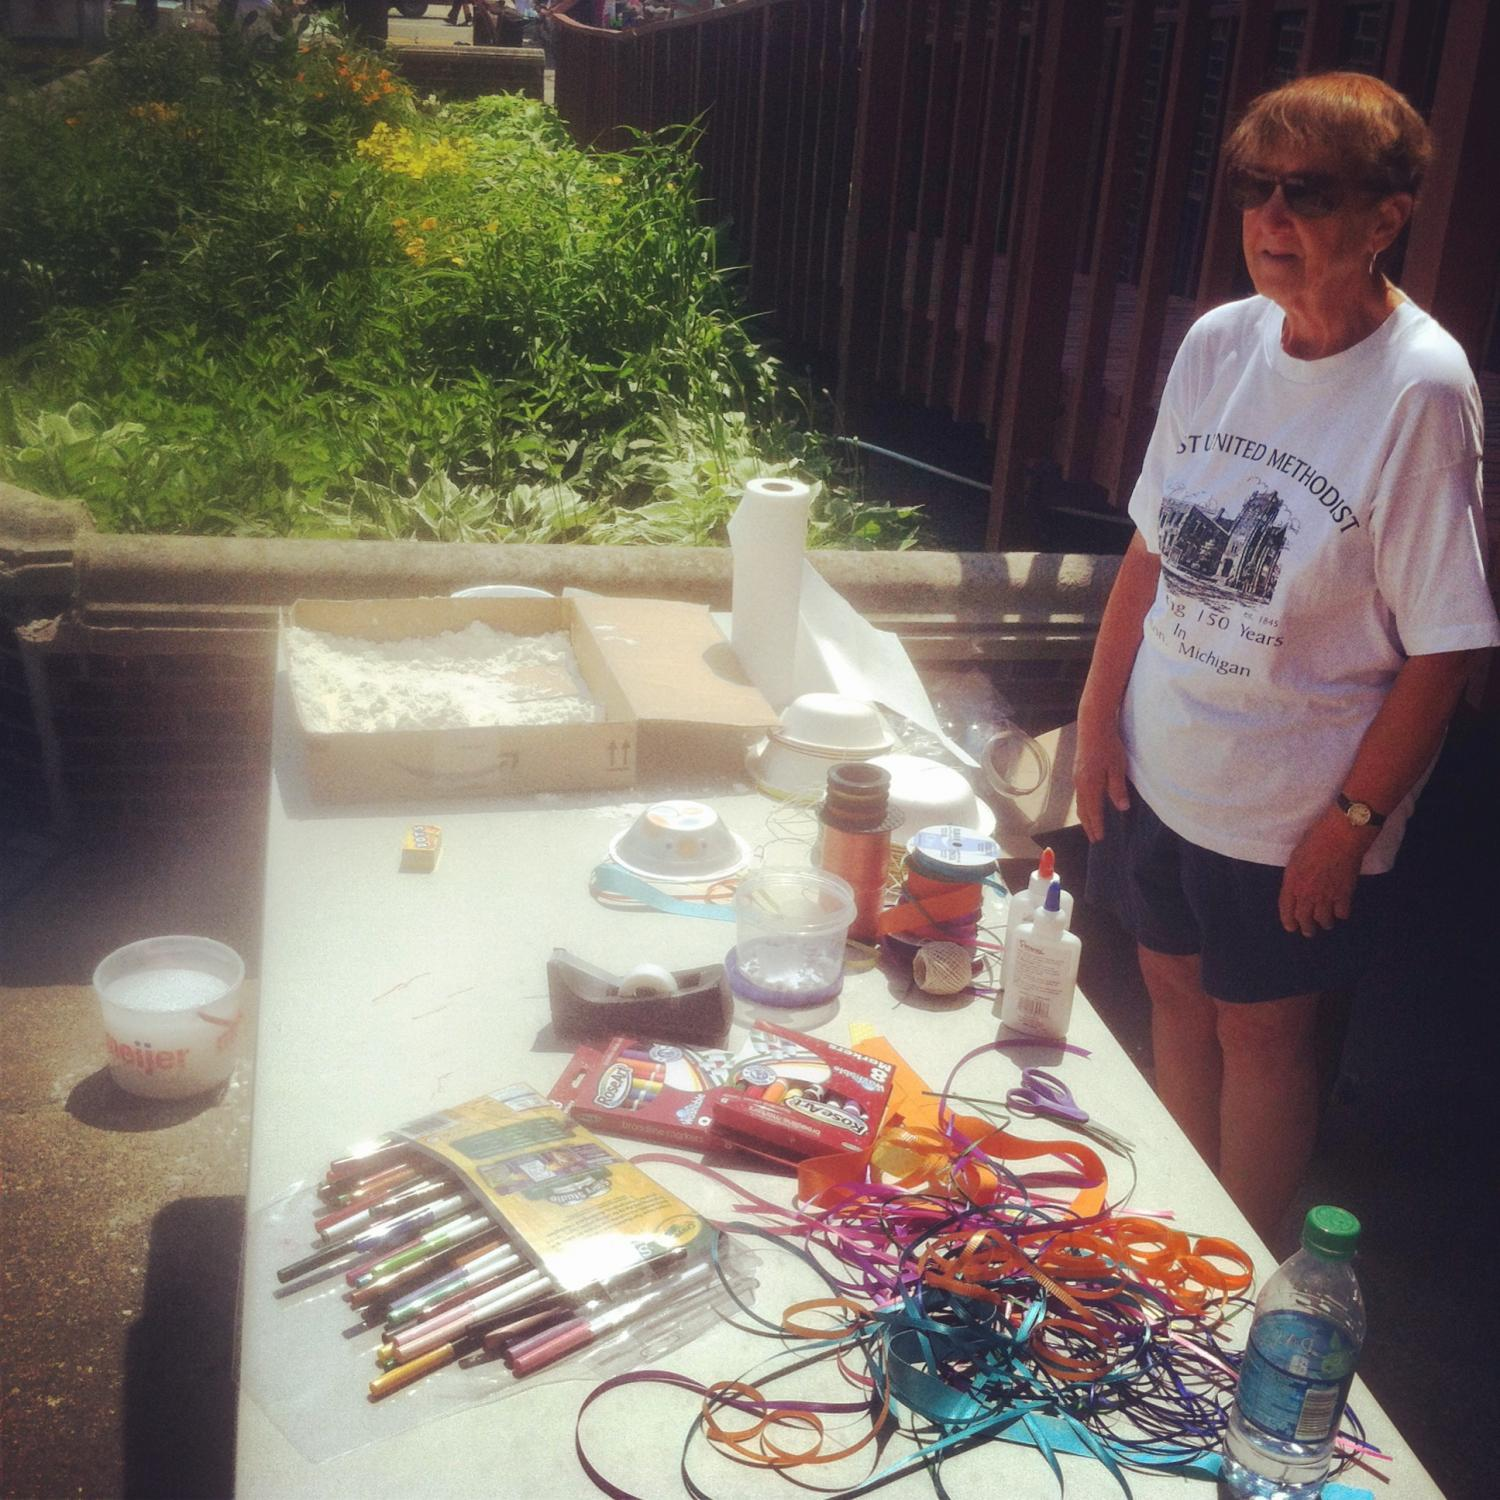 The start of the day at the Children's Corner craft table